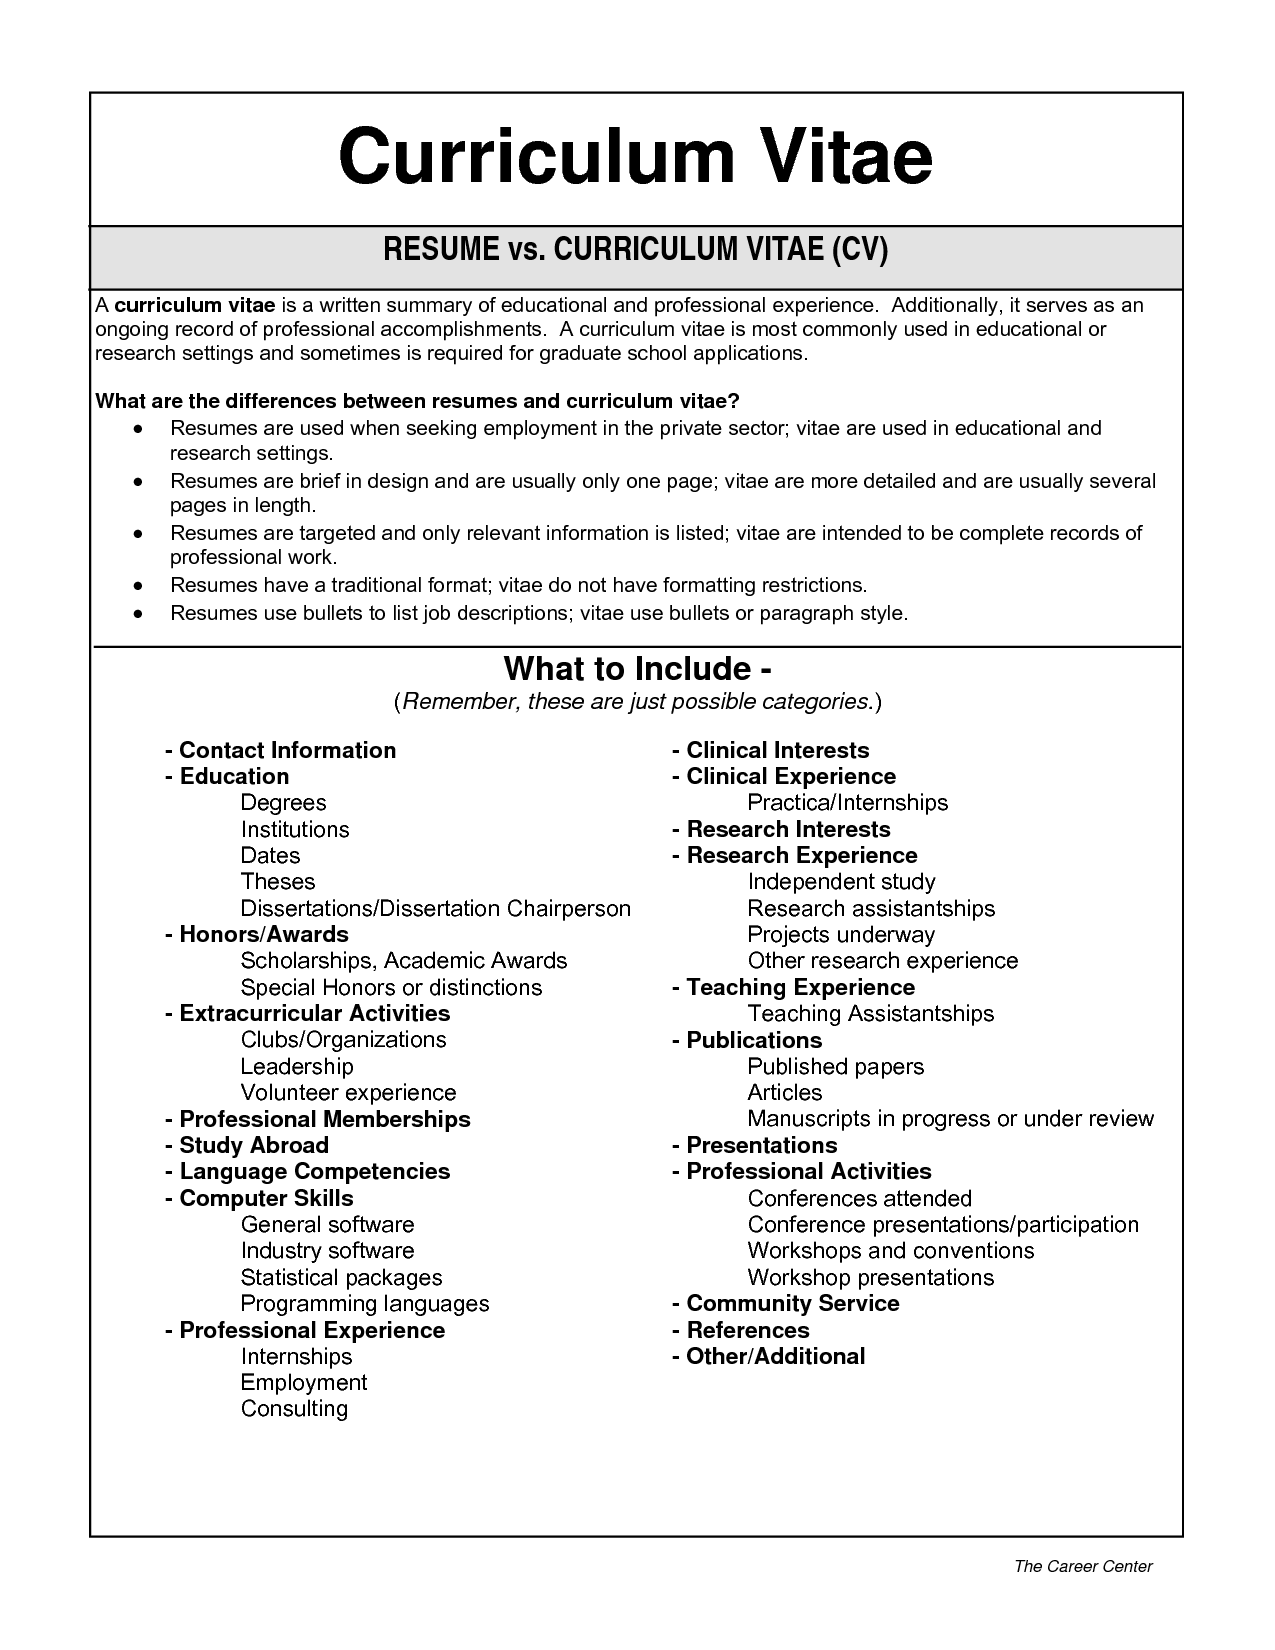 difference cv resume differences between resume and curriculum